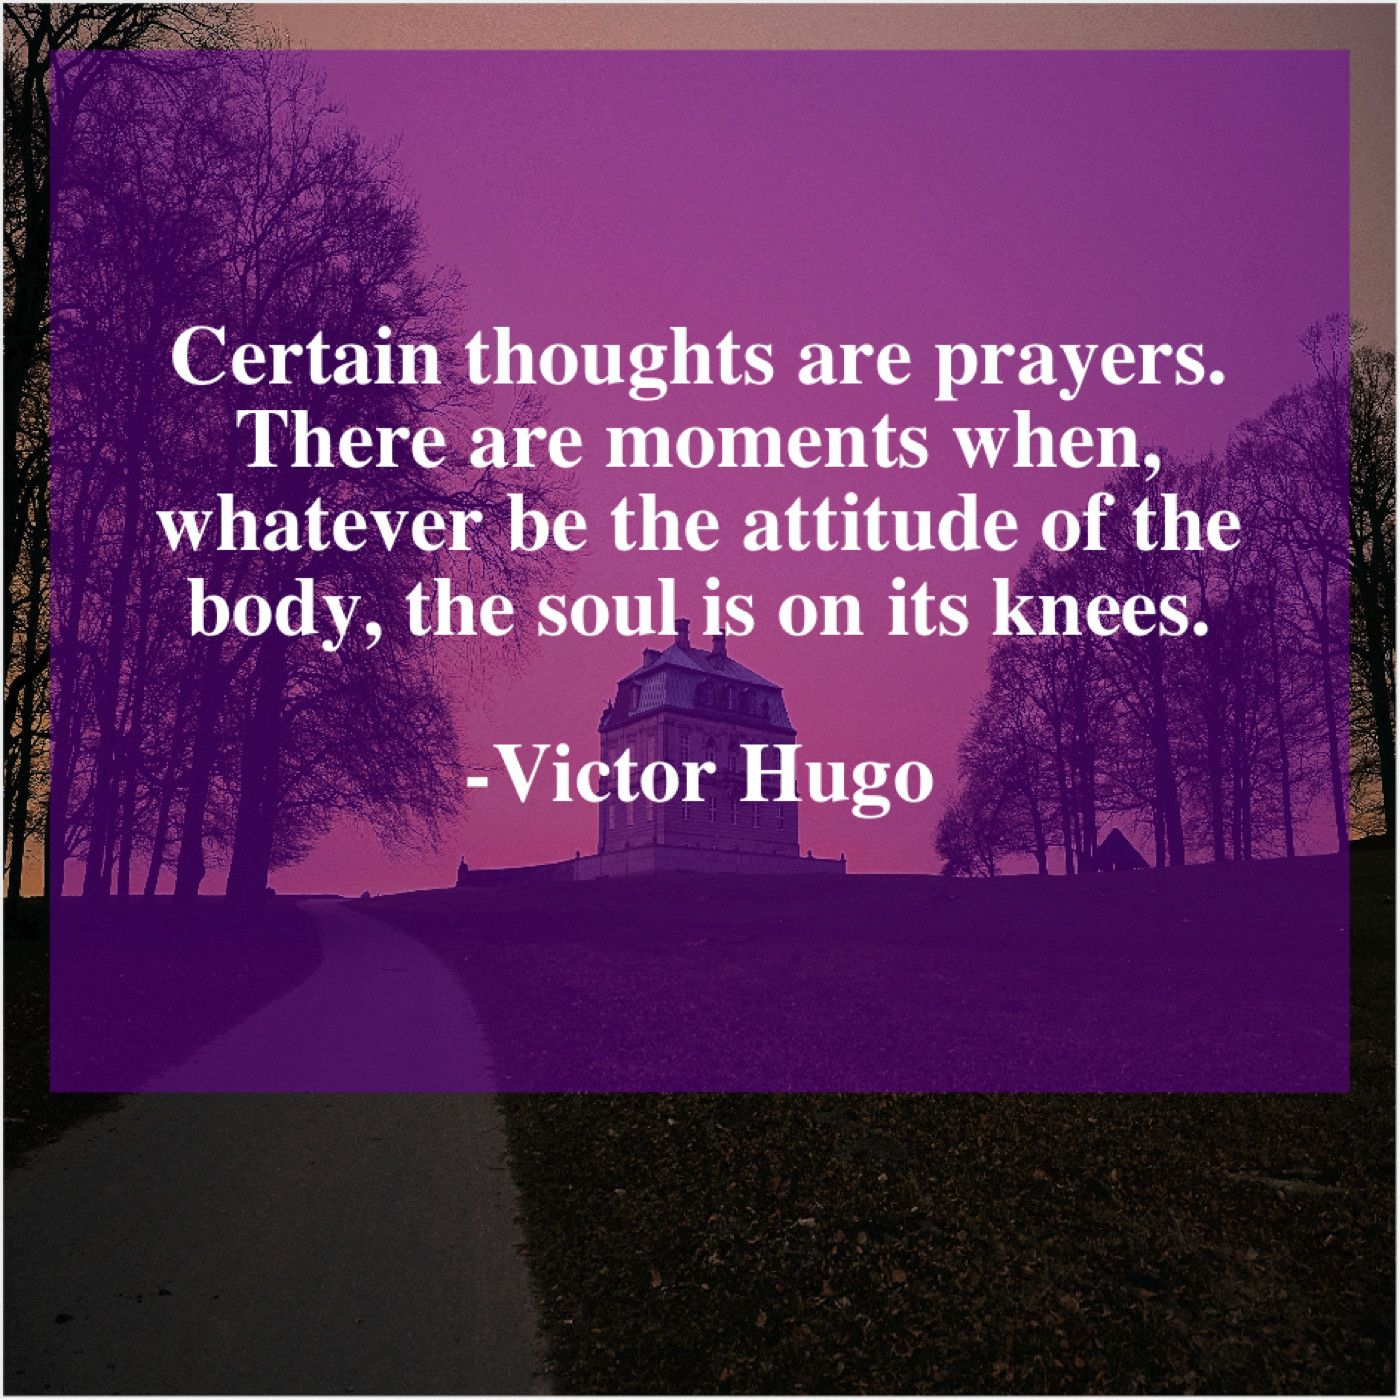 Victor Hugo Certain Thoughts Are Prayers There Victor Hugo Quotes Victor Hugo Favorite Book Quotes